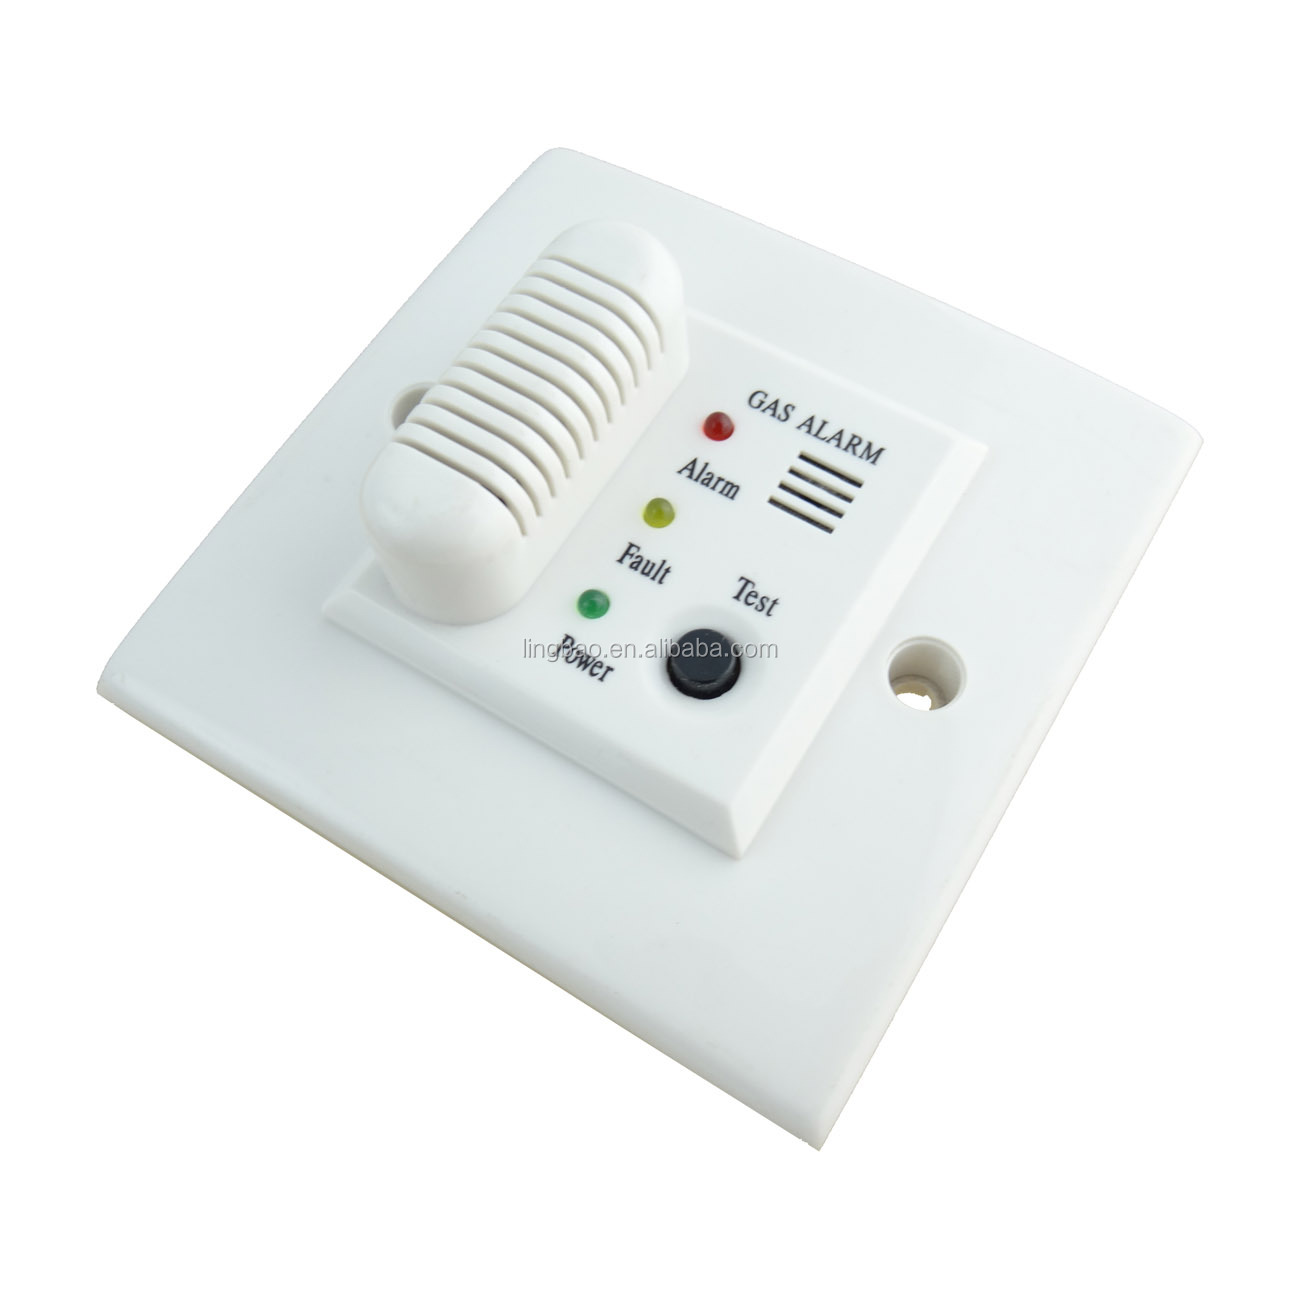 Embedded Gas Leakage Alarm with Semiconductor Sensor LED Indicator Test Button and CE Mark